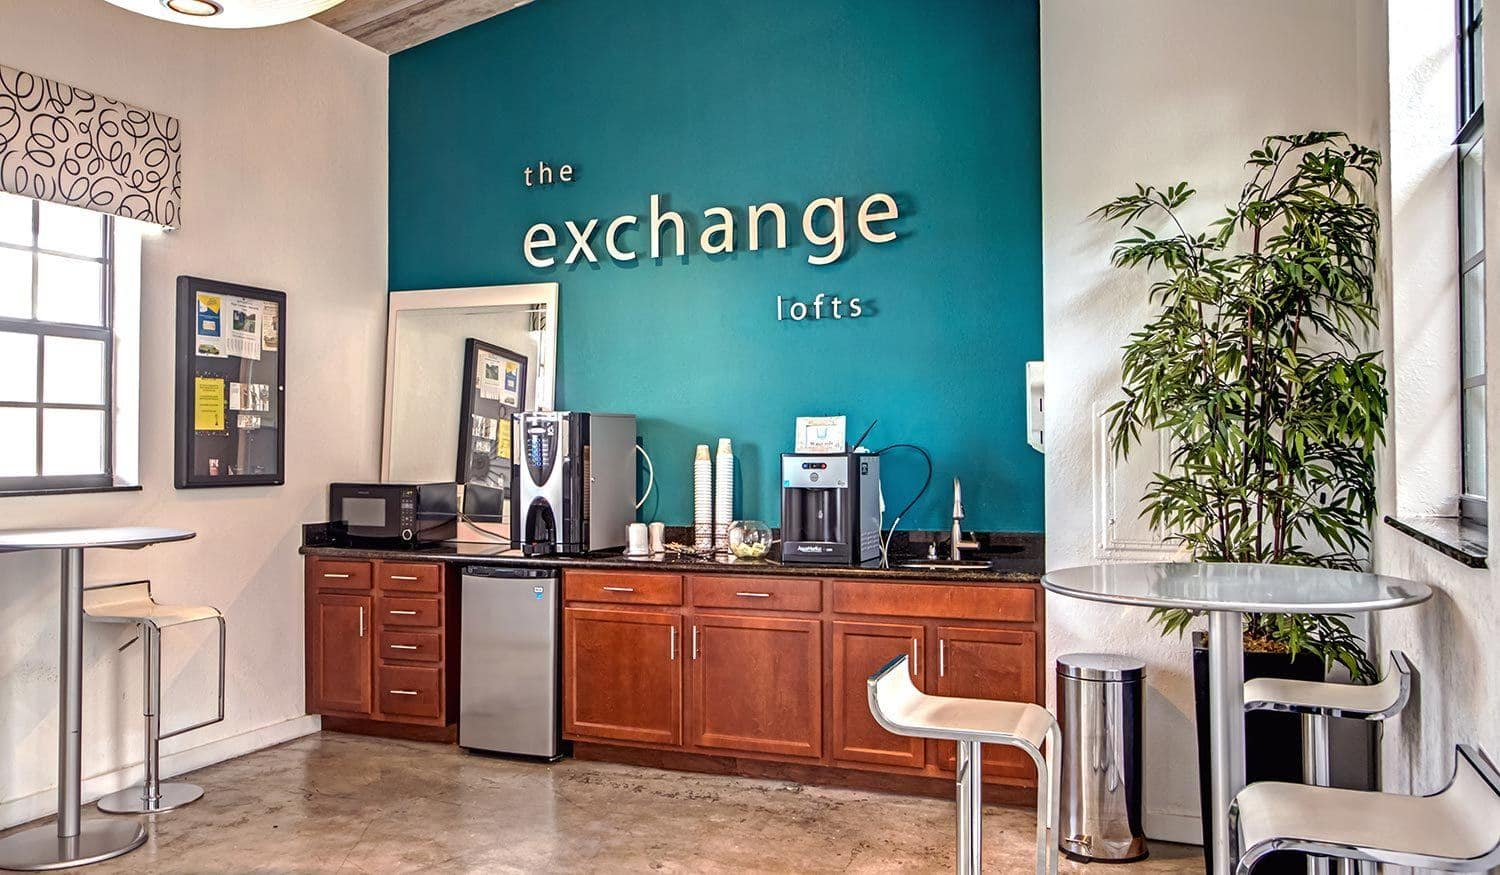 On-site cafe at The Exchange Lofts in Fort Lauderdale, Florida.